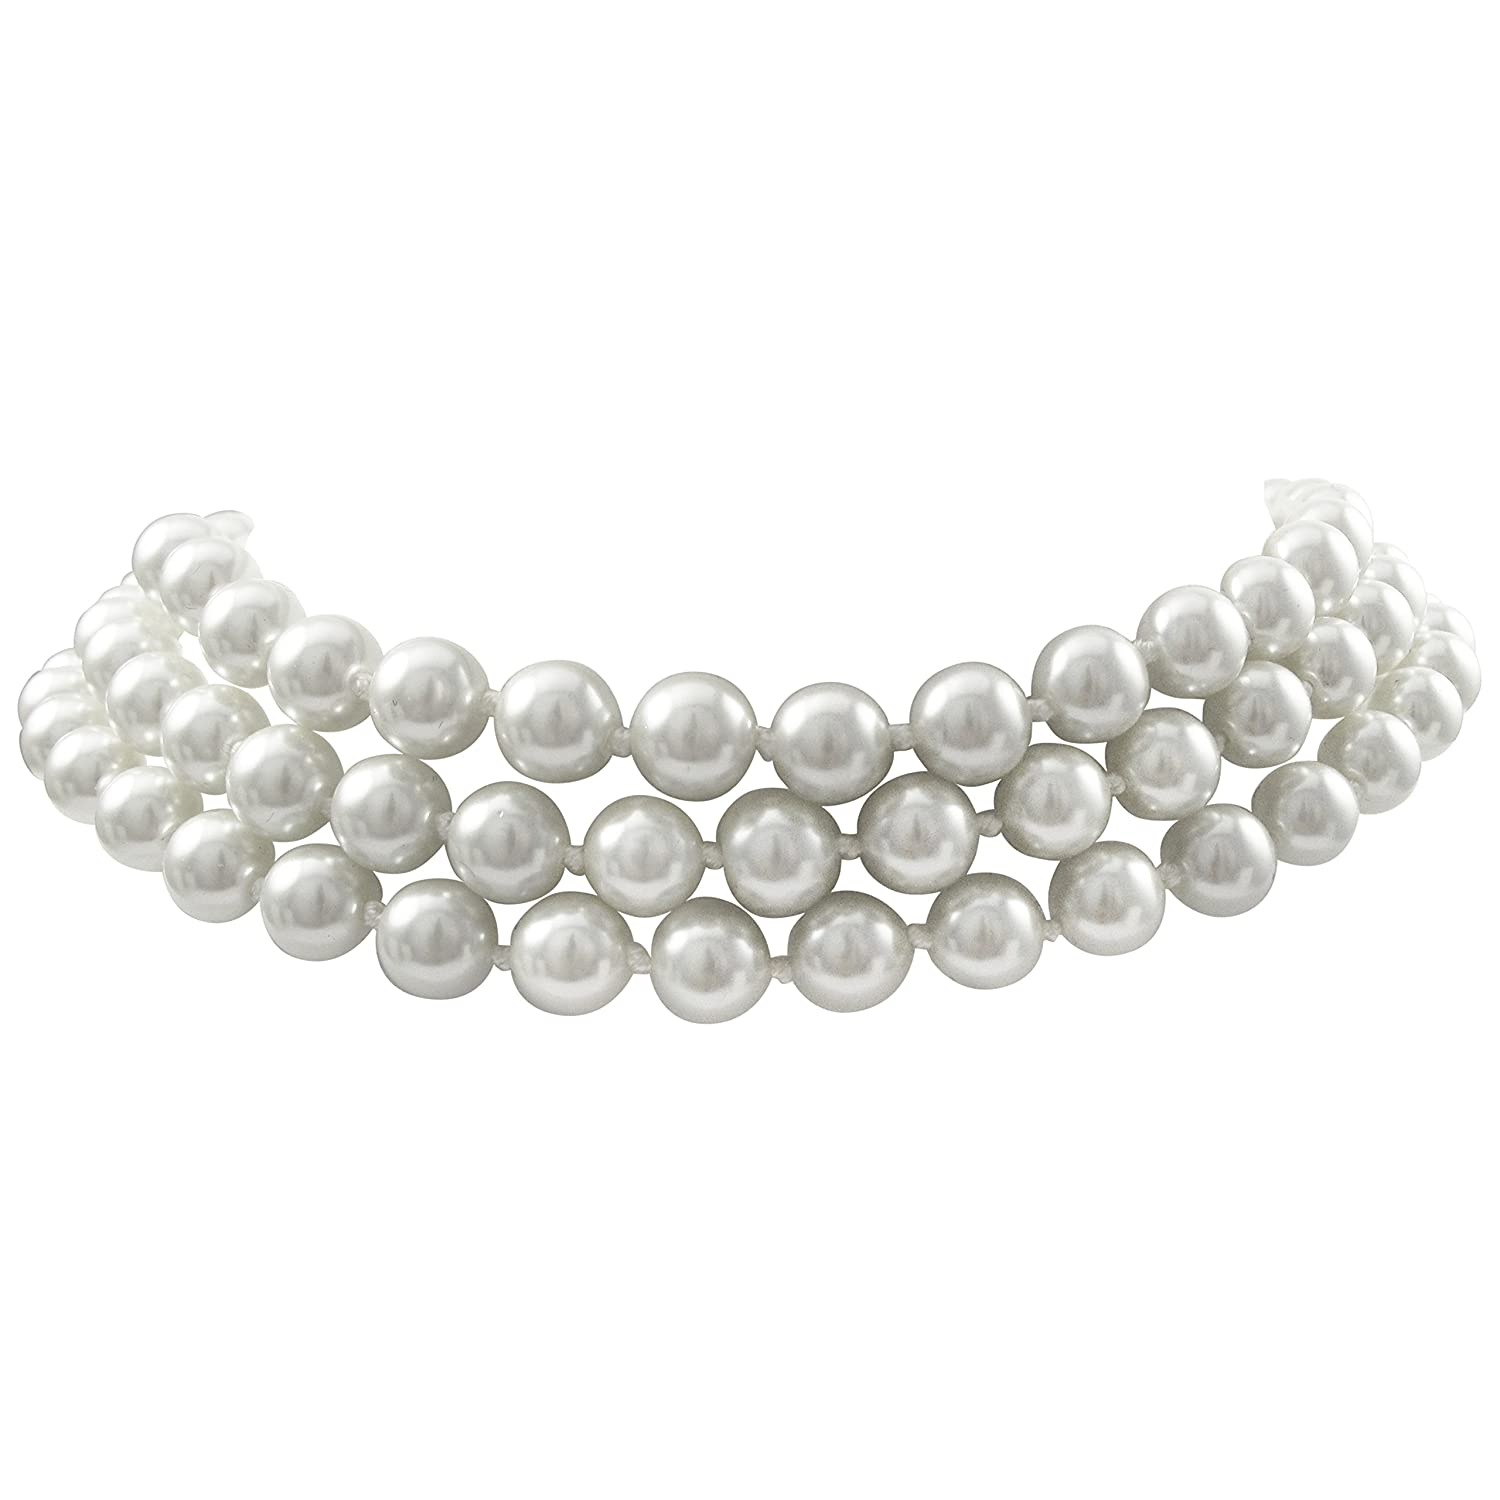 Isaac Kieran Faux Pearl Choker Necklace, Rhodium Finish, 3-Strands - 8-mm Pearls, 14 Inch plus 3 Inch Extender (White) LFN8MM-3R-SR-WhtIK